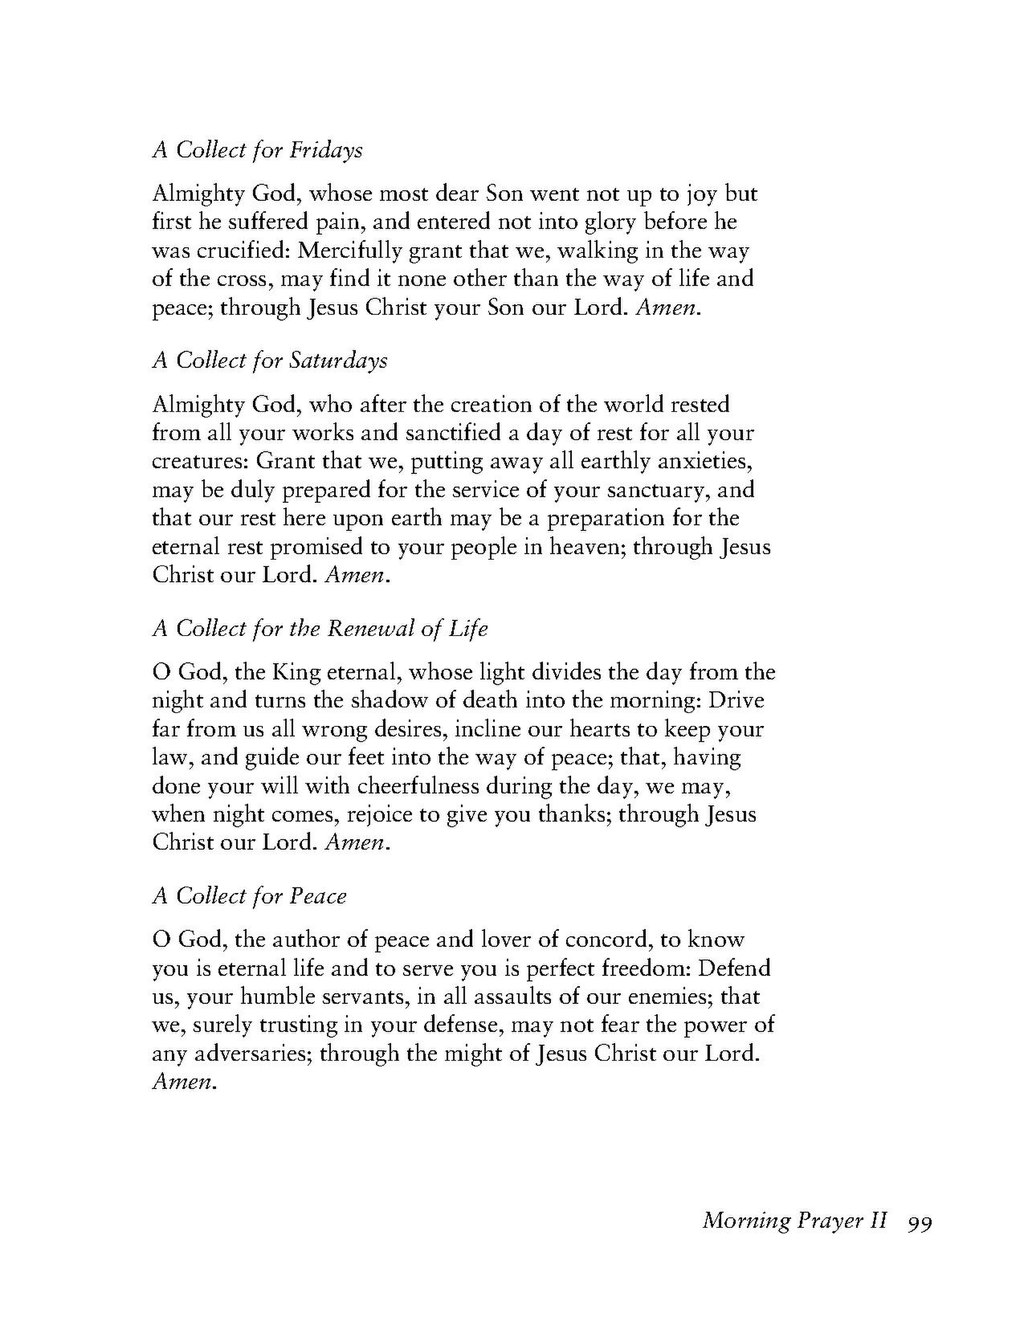 page book of common prayer tec 1979 pdf 99 wikisource the